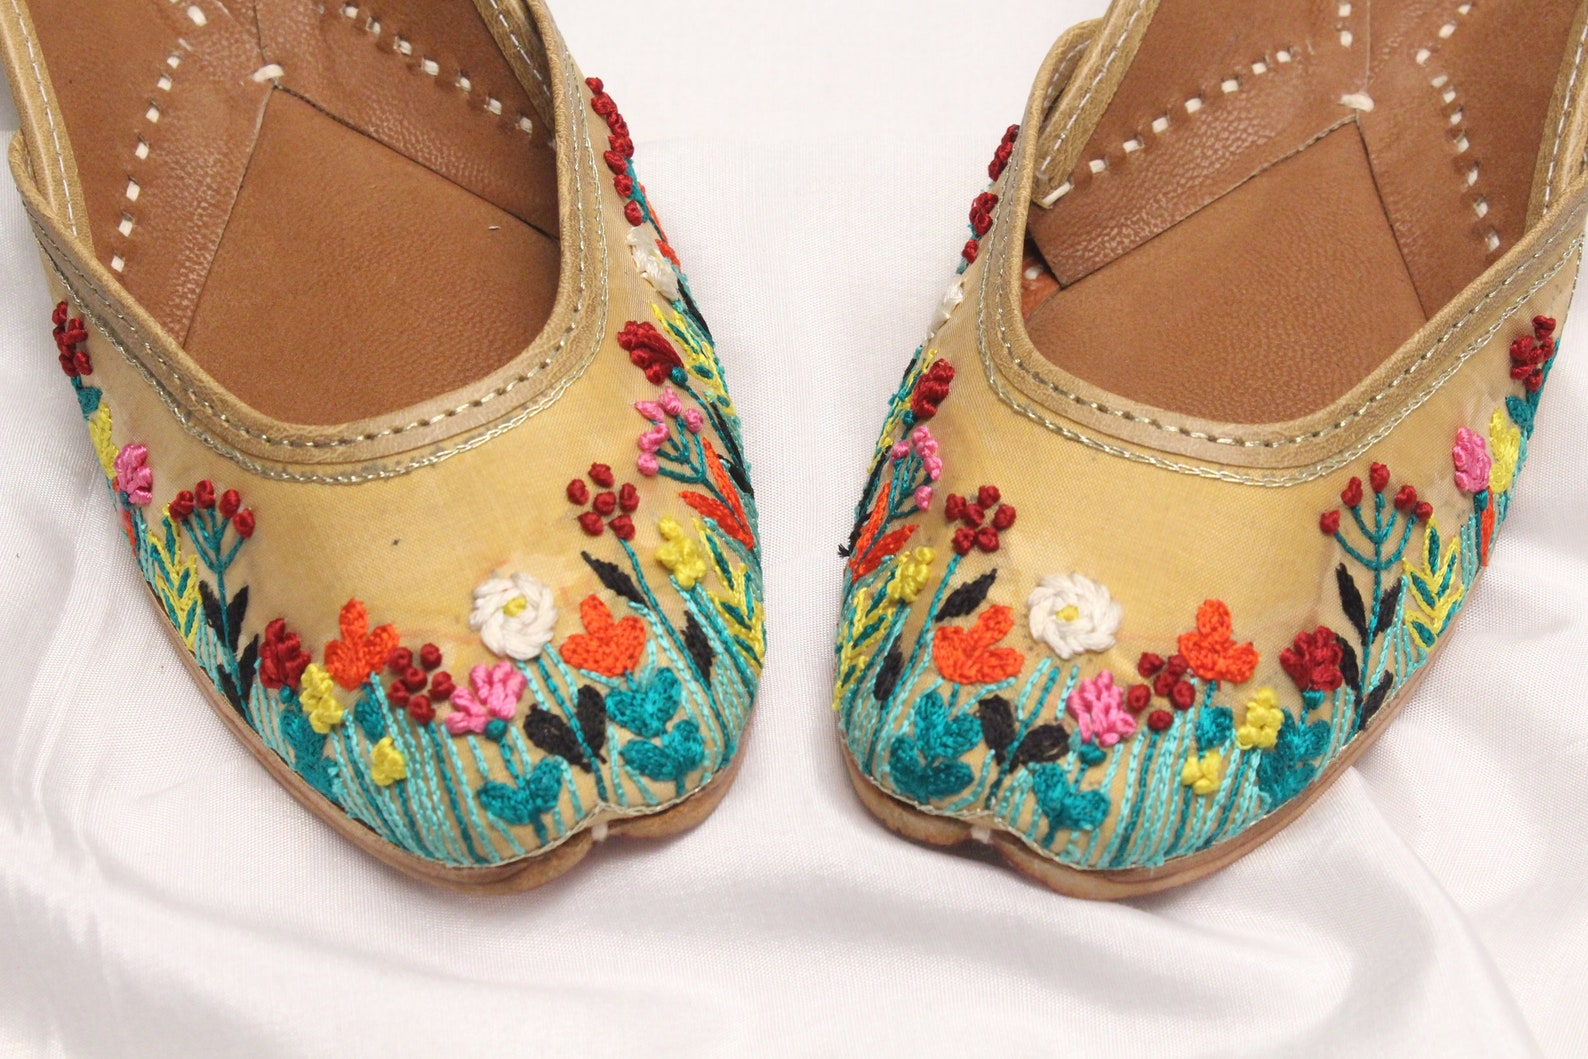 gold floral shoes bridal wedding/women gold jutti shoes/indian wedding flats/gold ballet flats/khussa shoes/punjabi shoes us siz